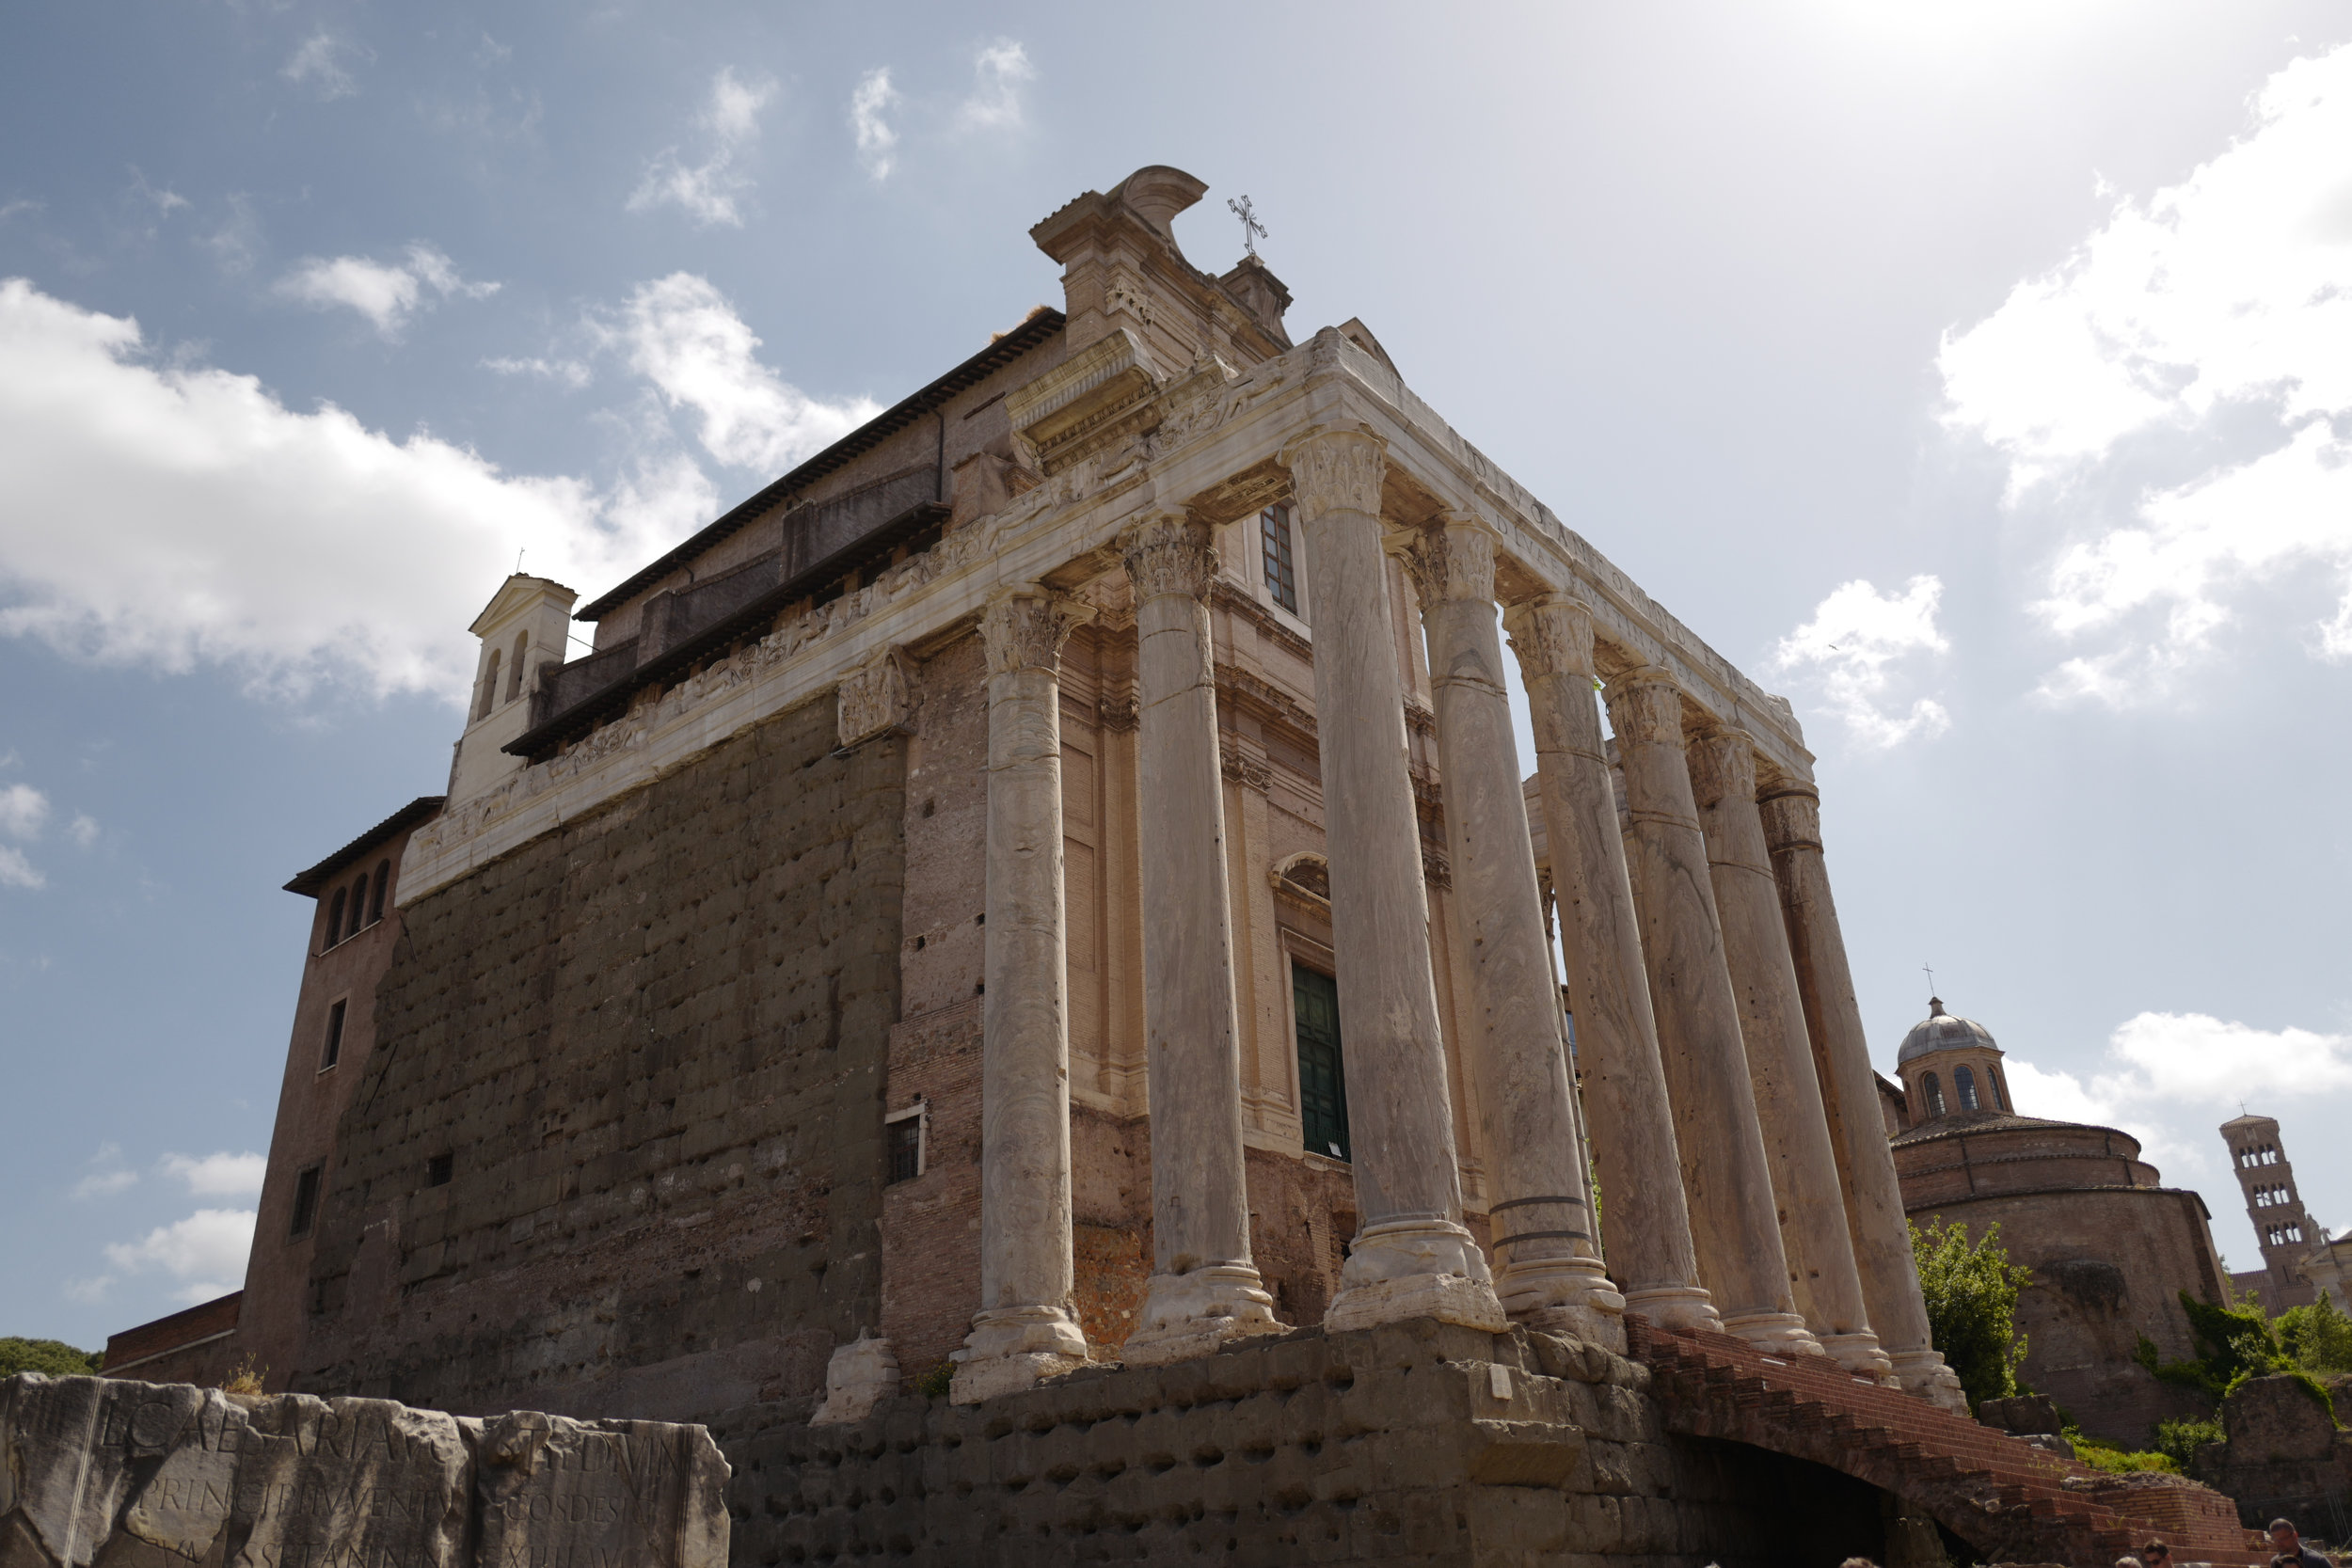 Temple of Antoninus and Faustina: Built in 141 AD by Emperor Antoninus Pius to honor his wife and was then converted into a Roman Catholic Church. (The columns are original).